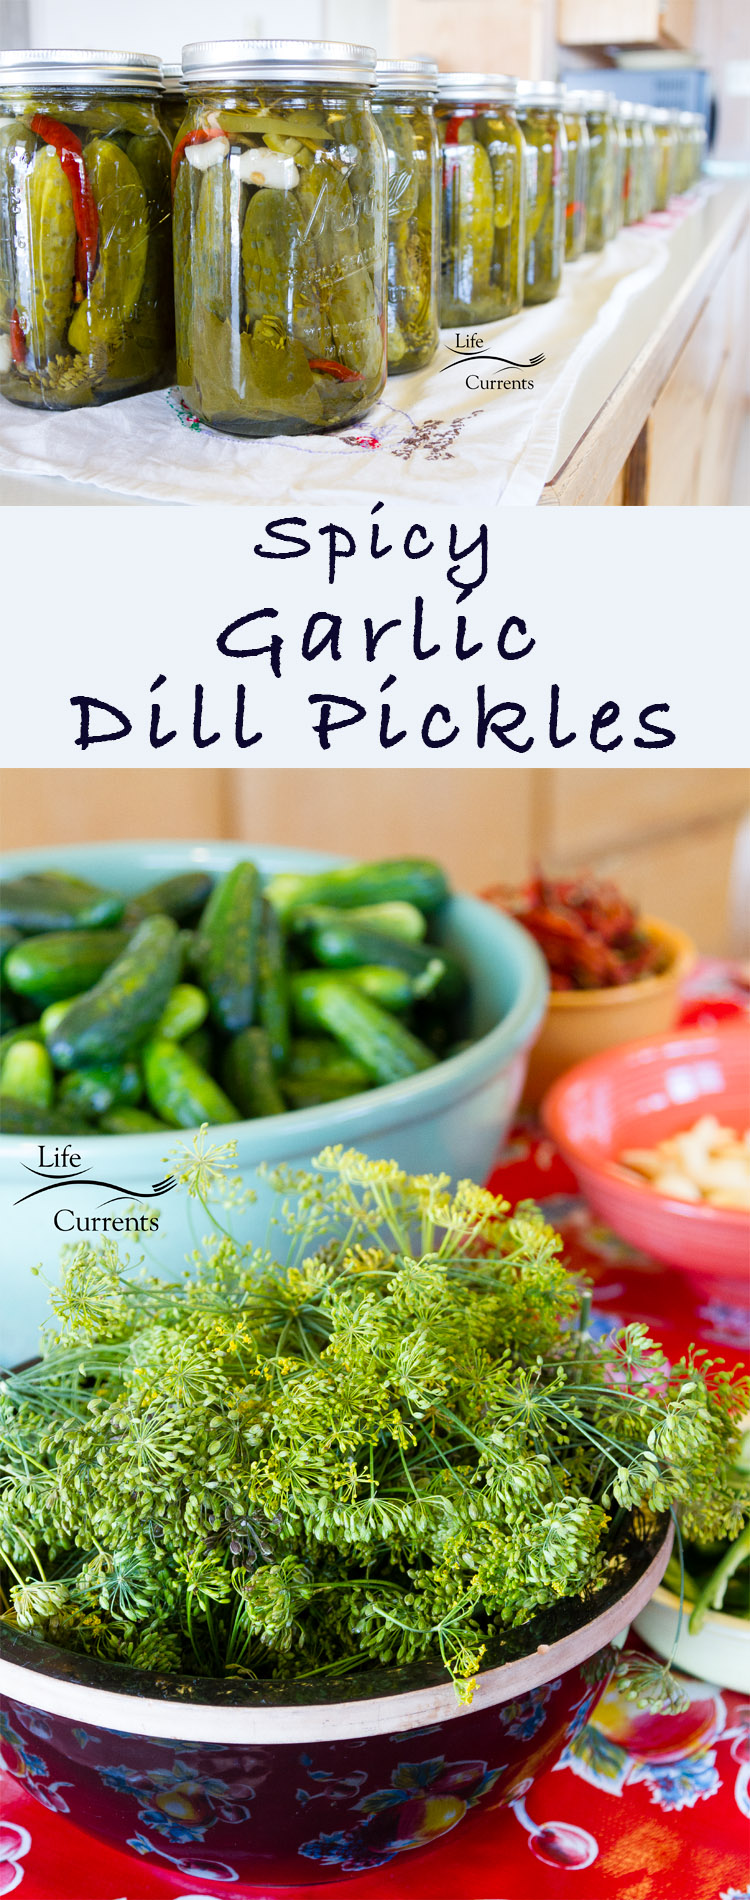 Spicy Garlic Dill Pickles - make your own to eat or give as gifts!